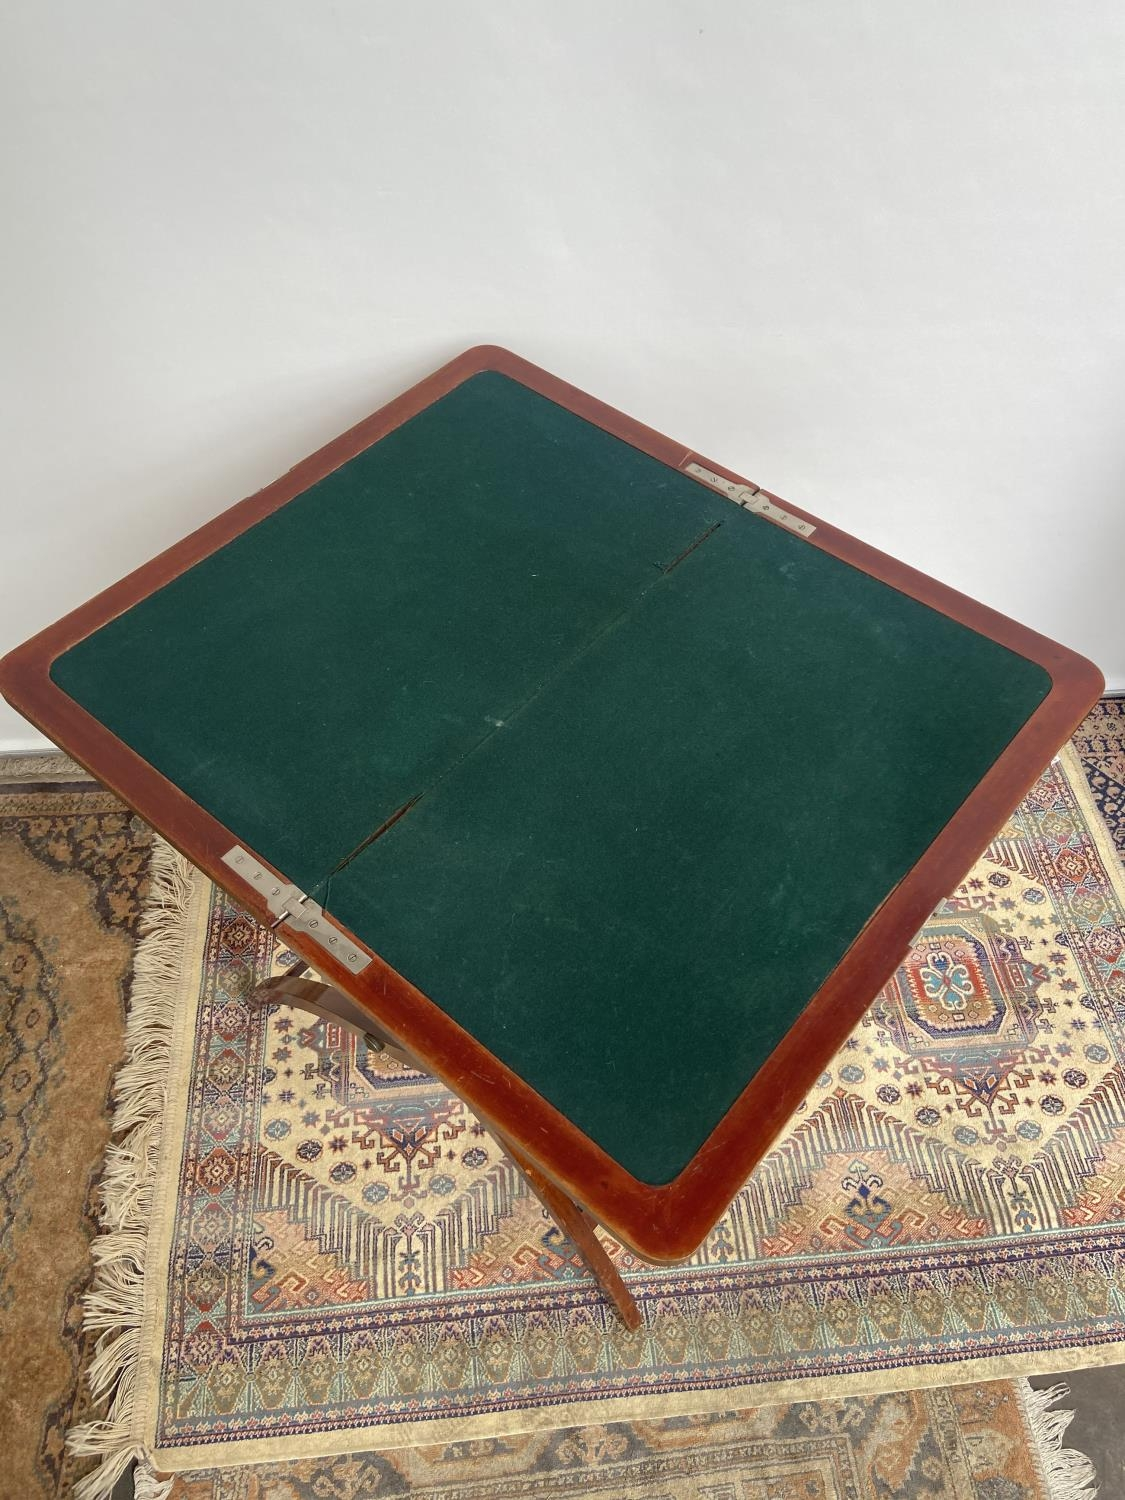 Antique Nawson Swan & Morgan folding card table/ writing table. [64cm in height, 75cm wide] - Image 2 of 6